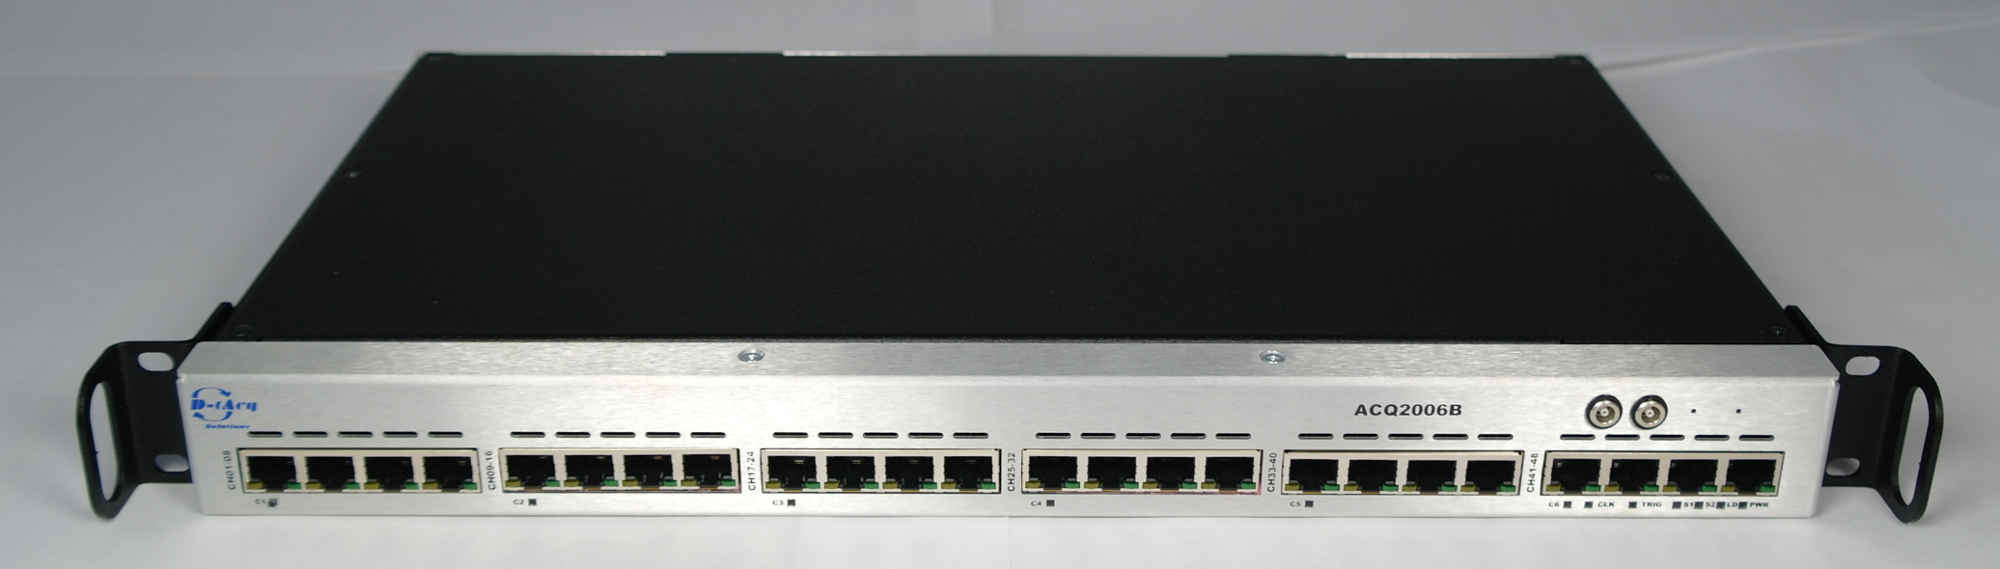 Compact Systems: ACQ2006, 48 channels, RJ45 connectors